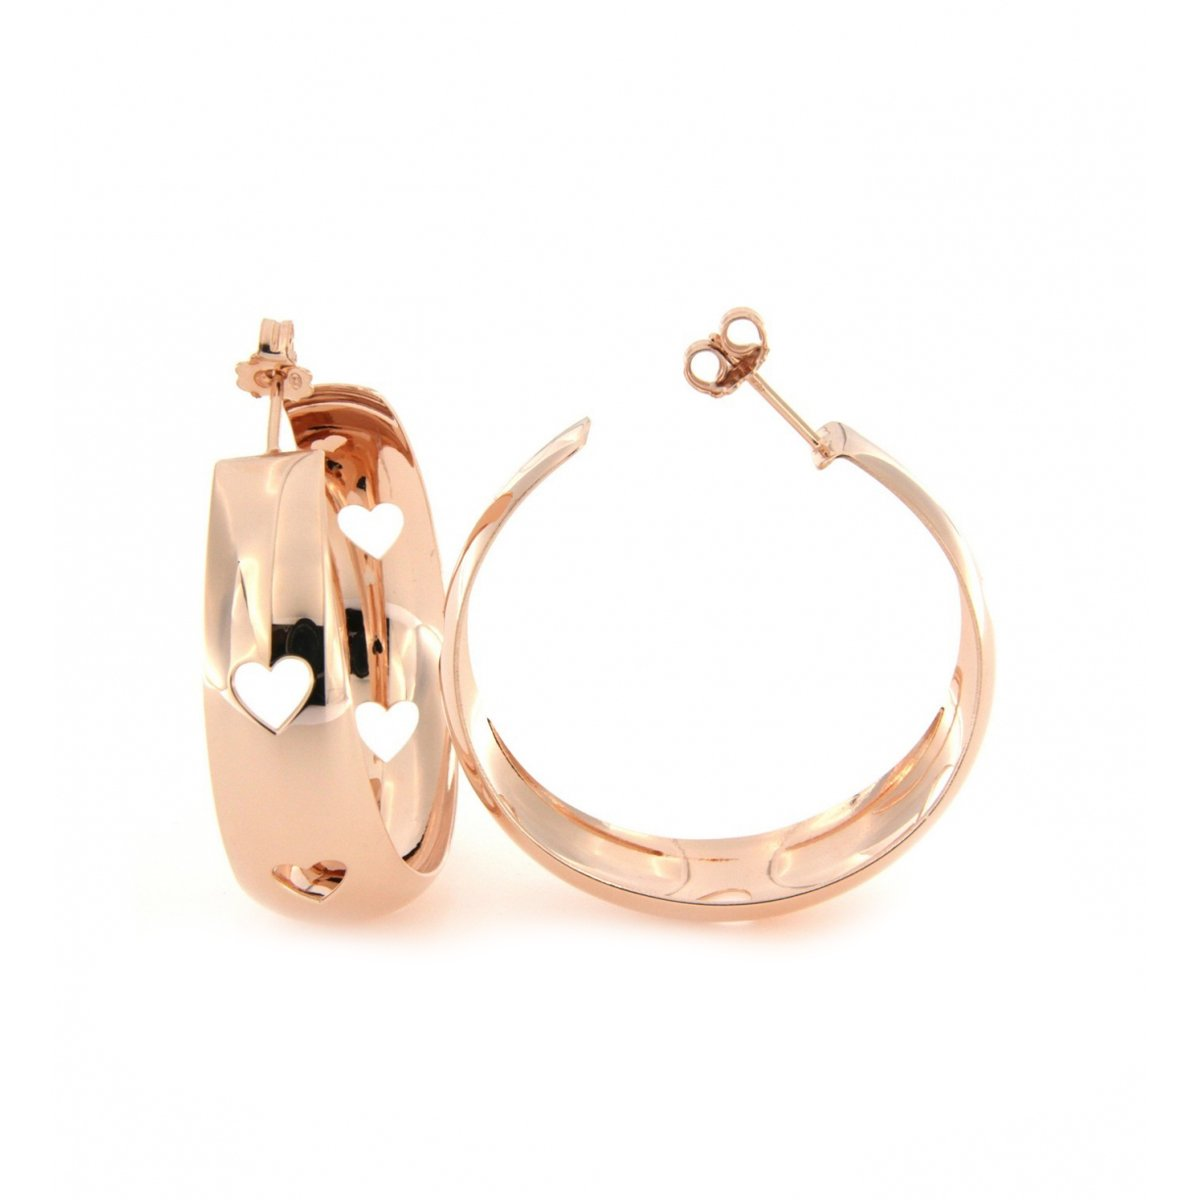 Earrings - Hoop Earrings with Rounded Large Openwork Subject - Heart - 1   Rue des Mille